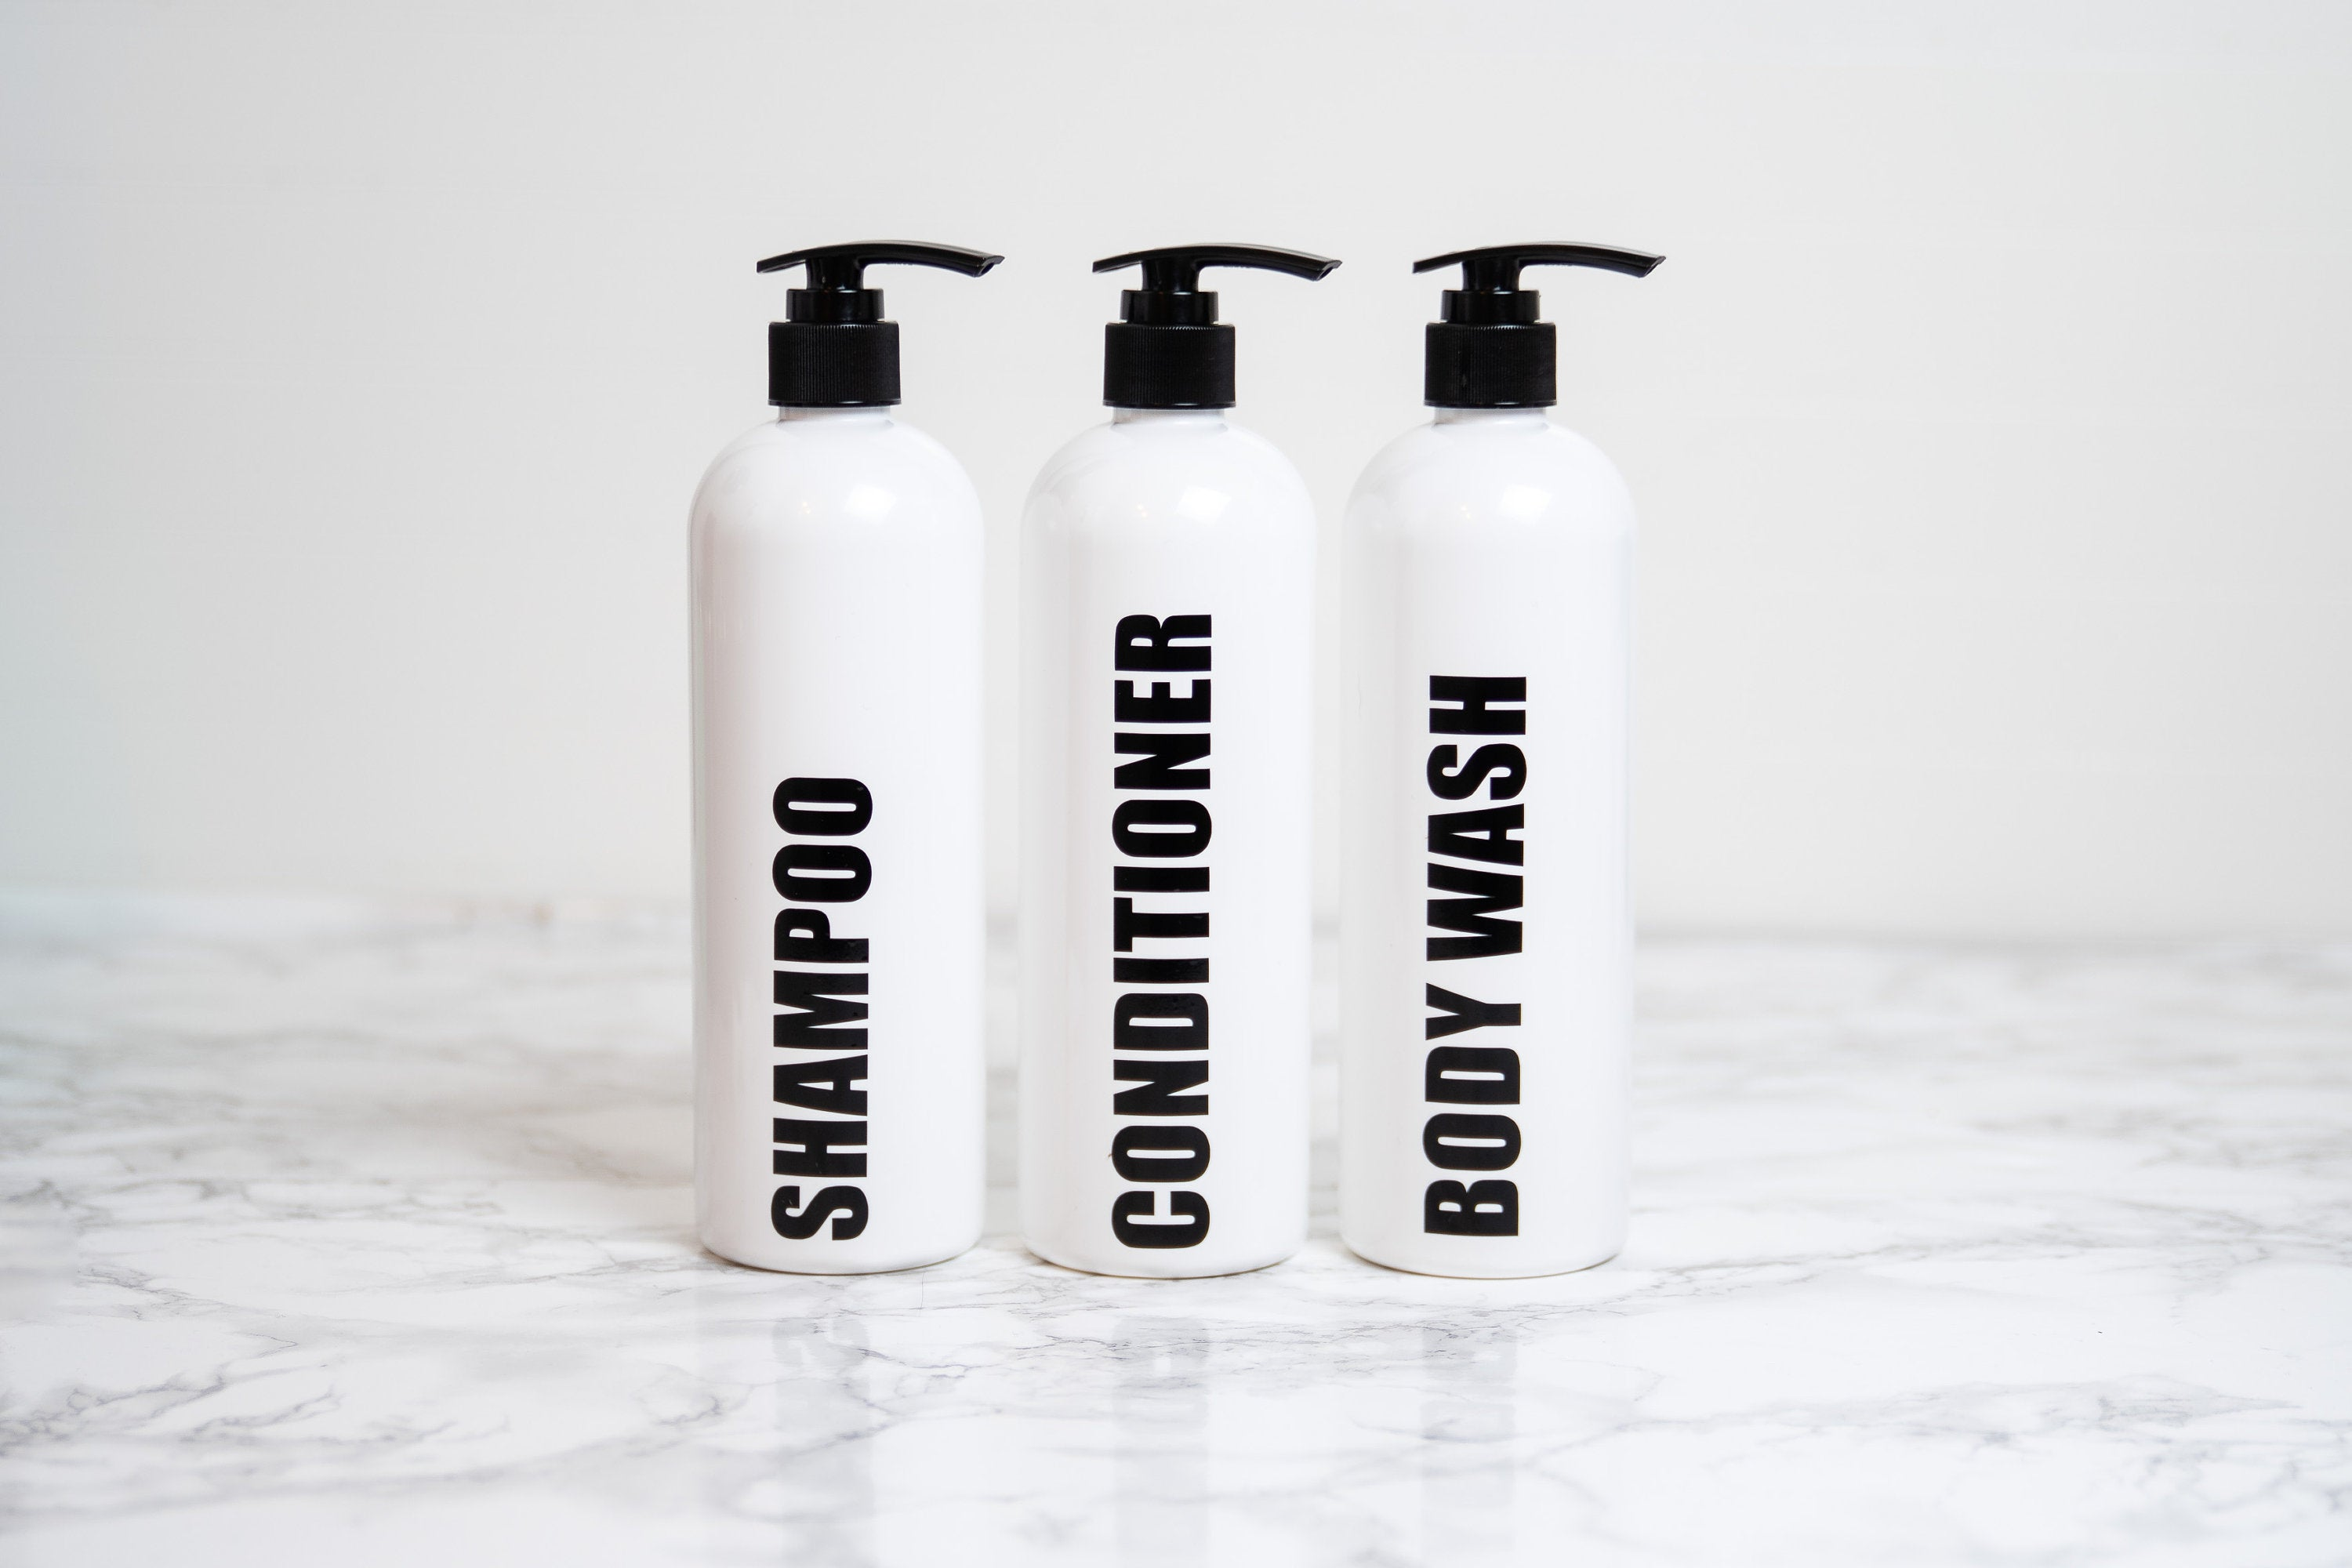 Minimalist Bathroom Accessories, Bathroom Shower Sets, Custom Shampoo and Conditioner Bottles, Shampoo Dispenser Plastic